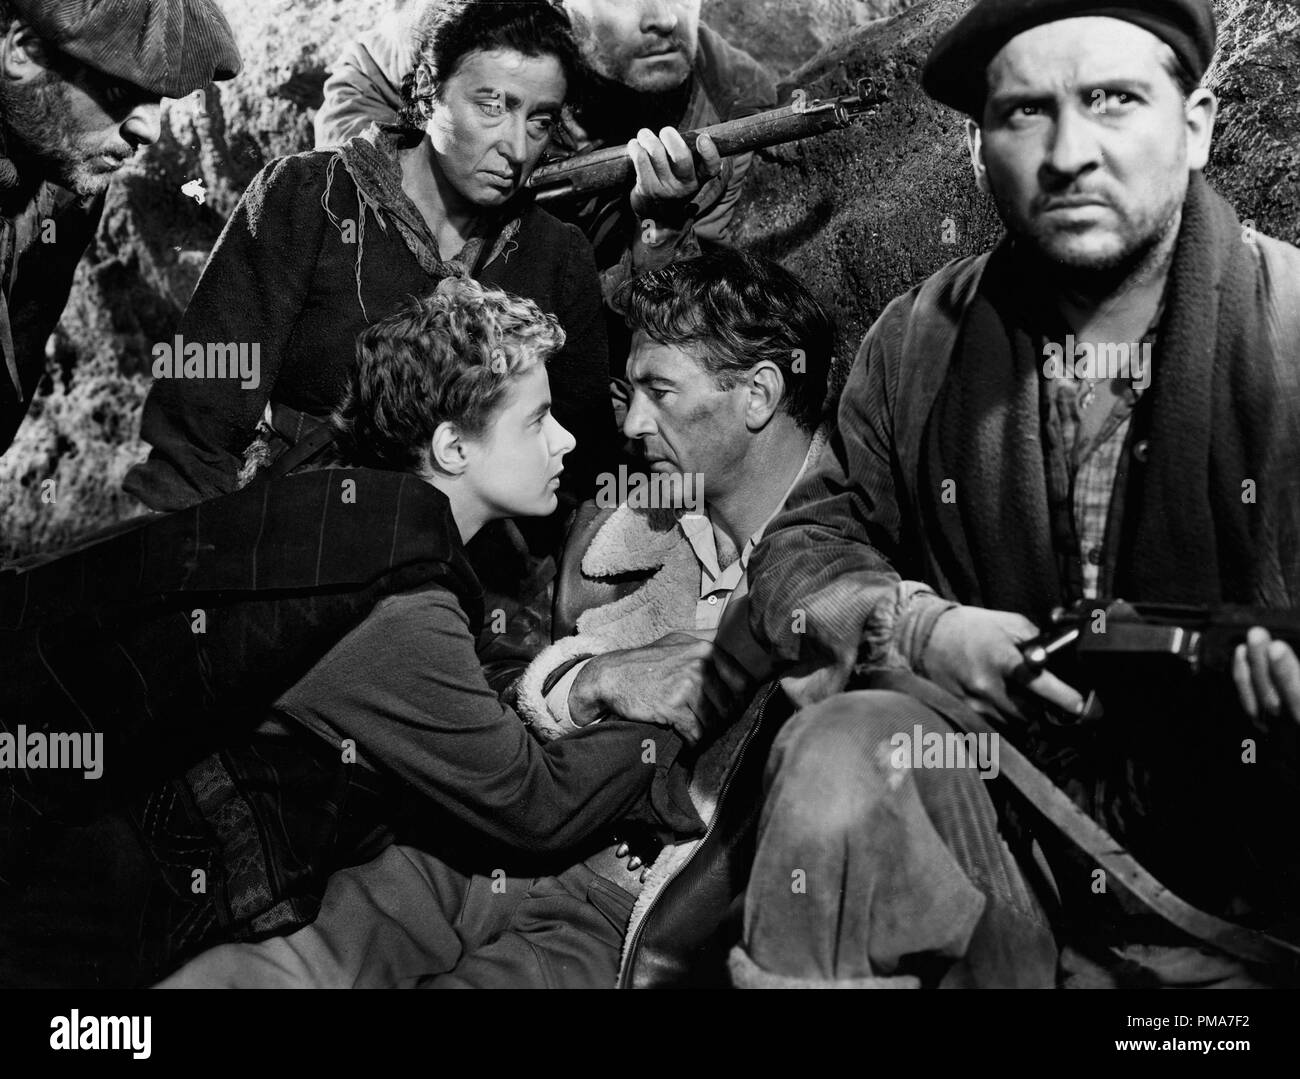 Ingrid Bergman, Gary Cooper, Arturo de Cordova and Katina Paxinou, 'For Whom The Bell Tolls', 1943 Paramount Pictures     File Reference # 32263_353THA - Stock Image